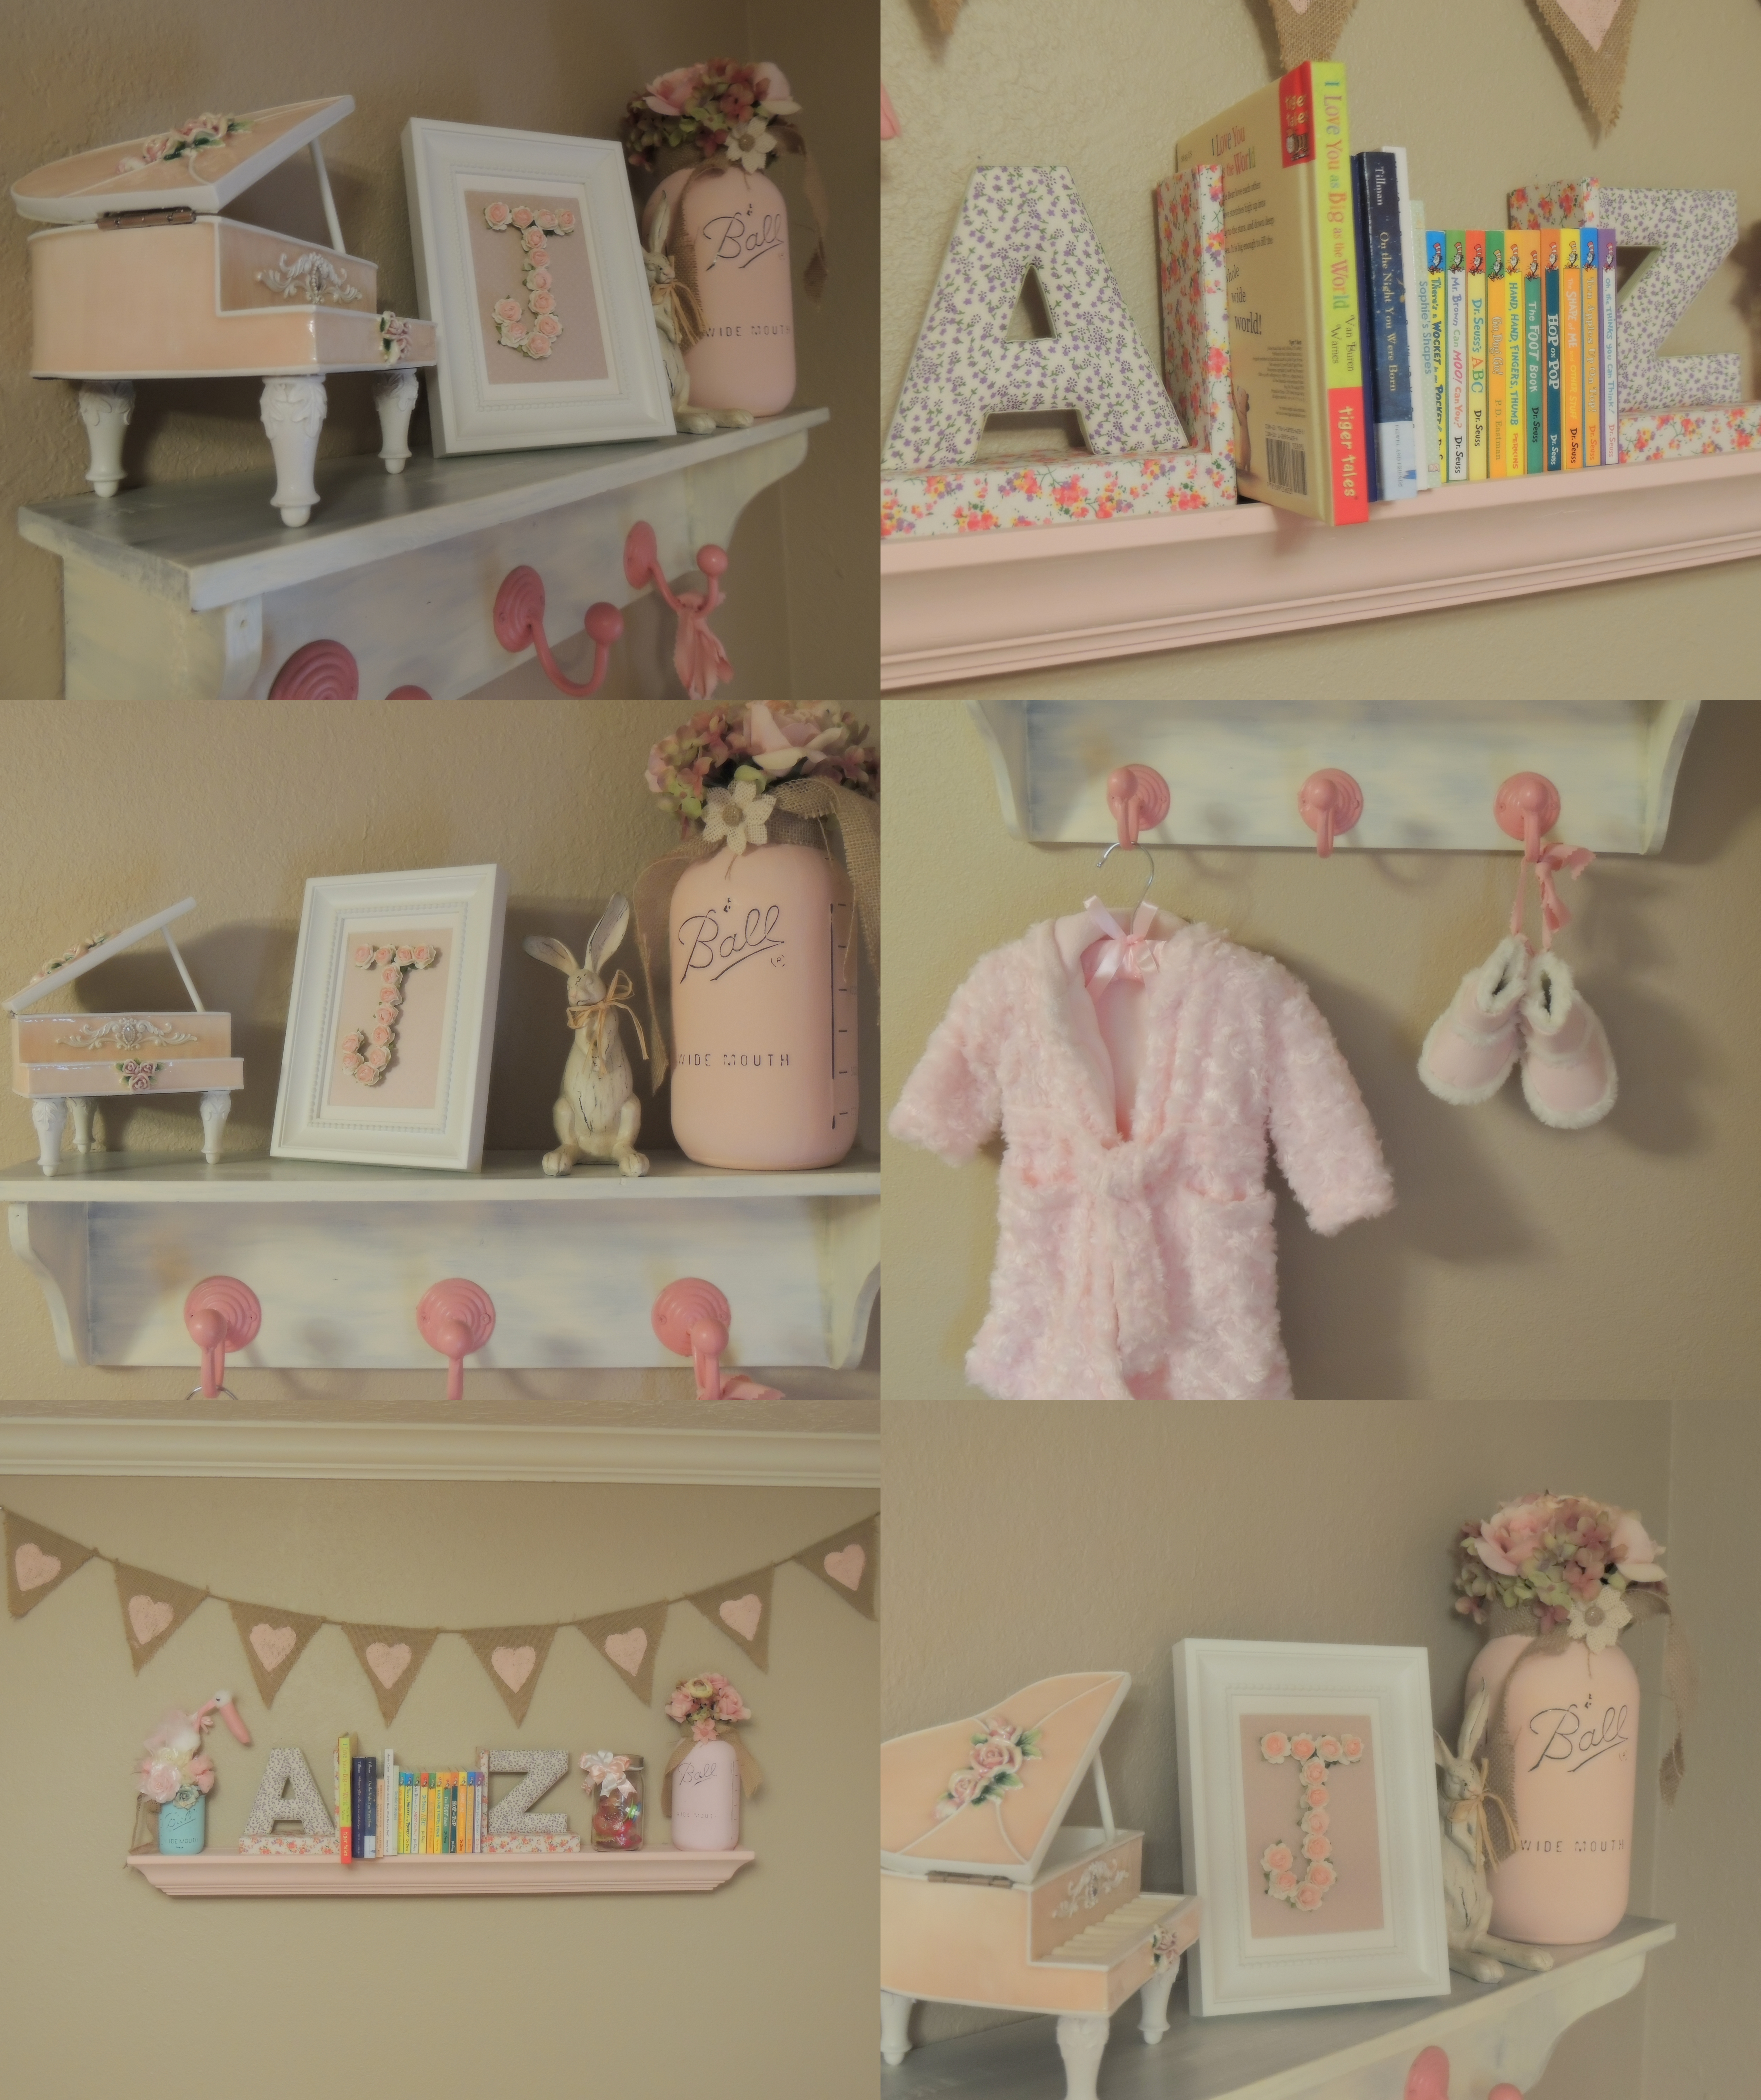 Shabby chic painted rocking chairs - The Pink Shelf That I Painted Recently As Well As The Shelf Above The Rocking Chair The J Frame Just Recently Came In The Mail From Etsy I Love It